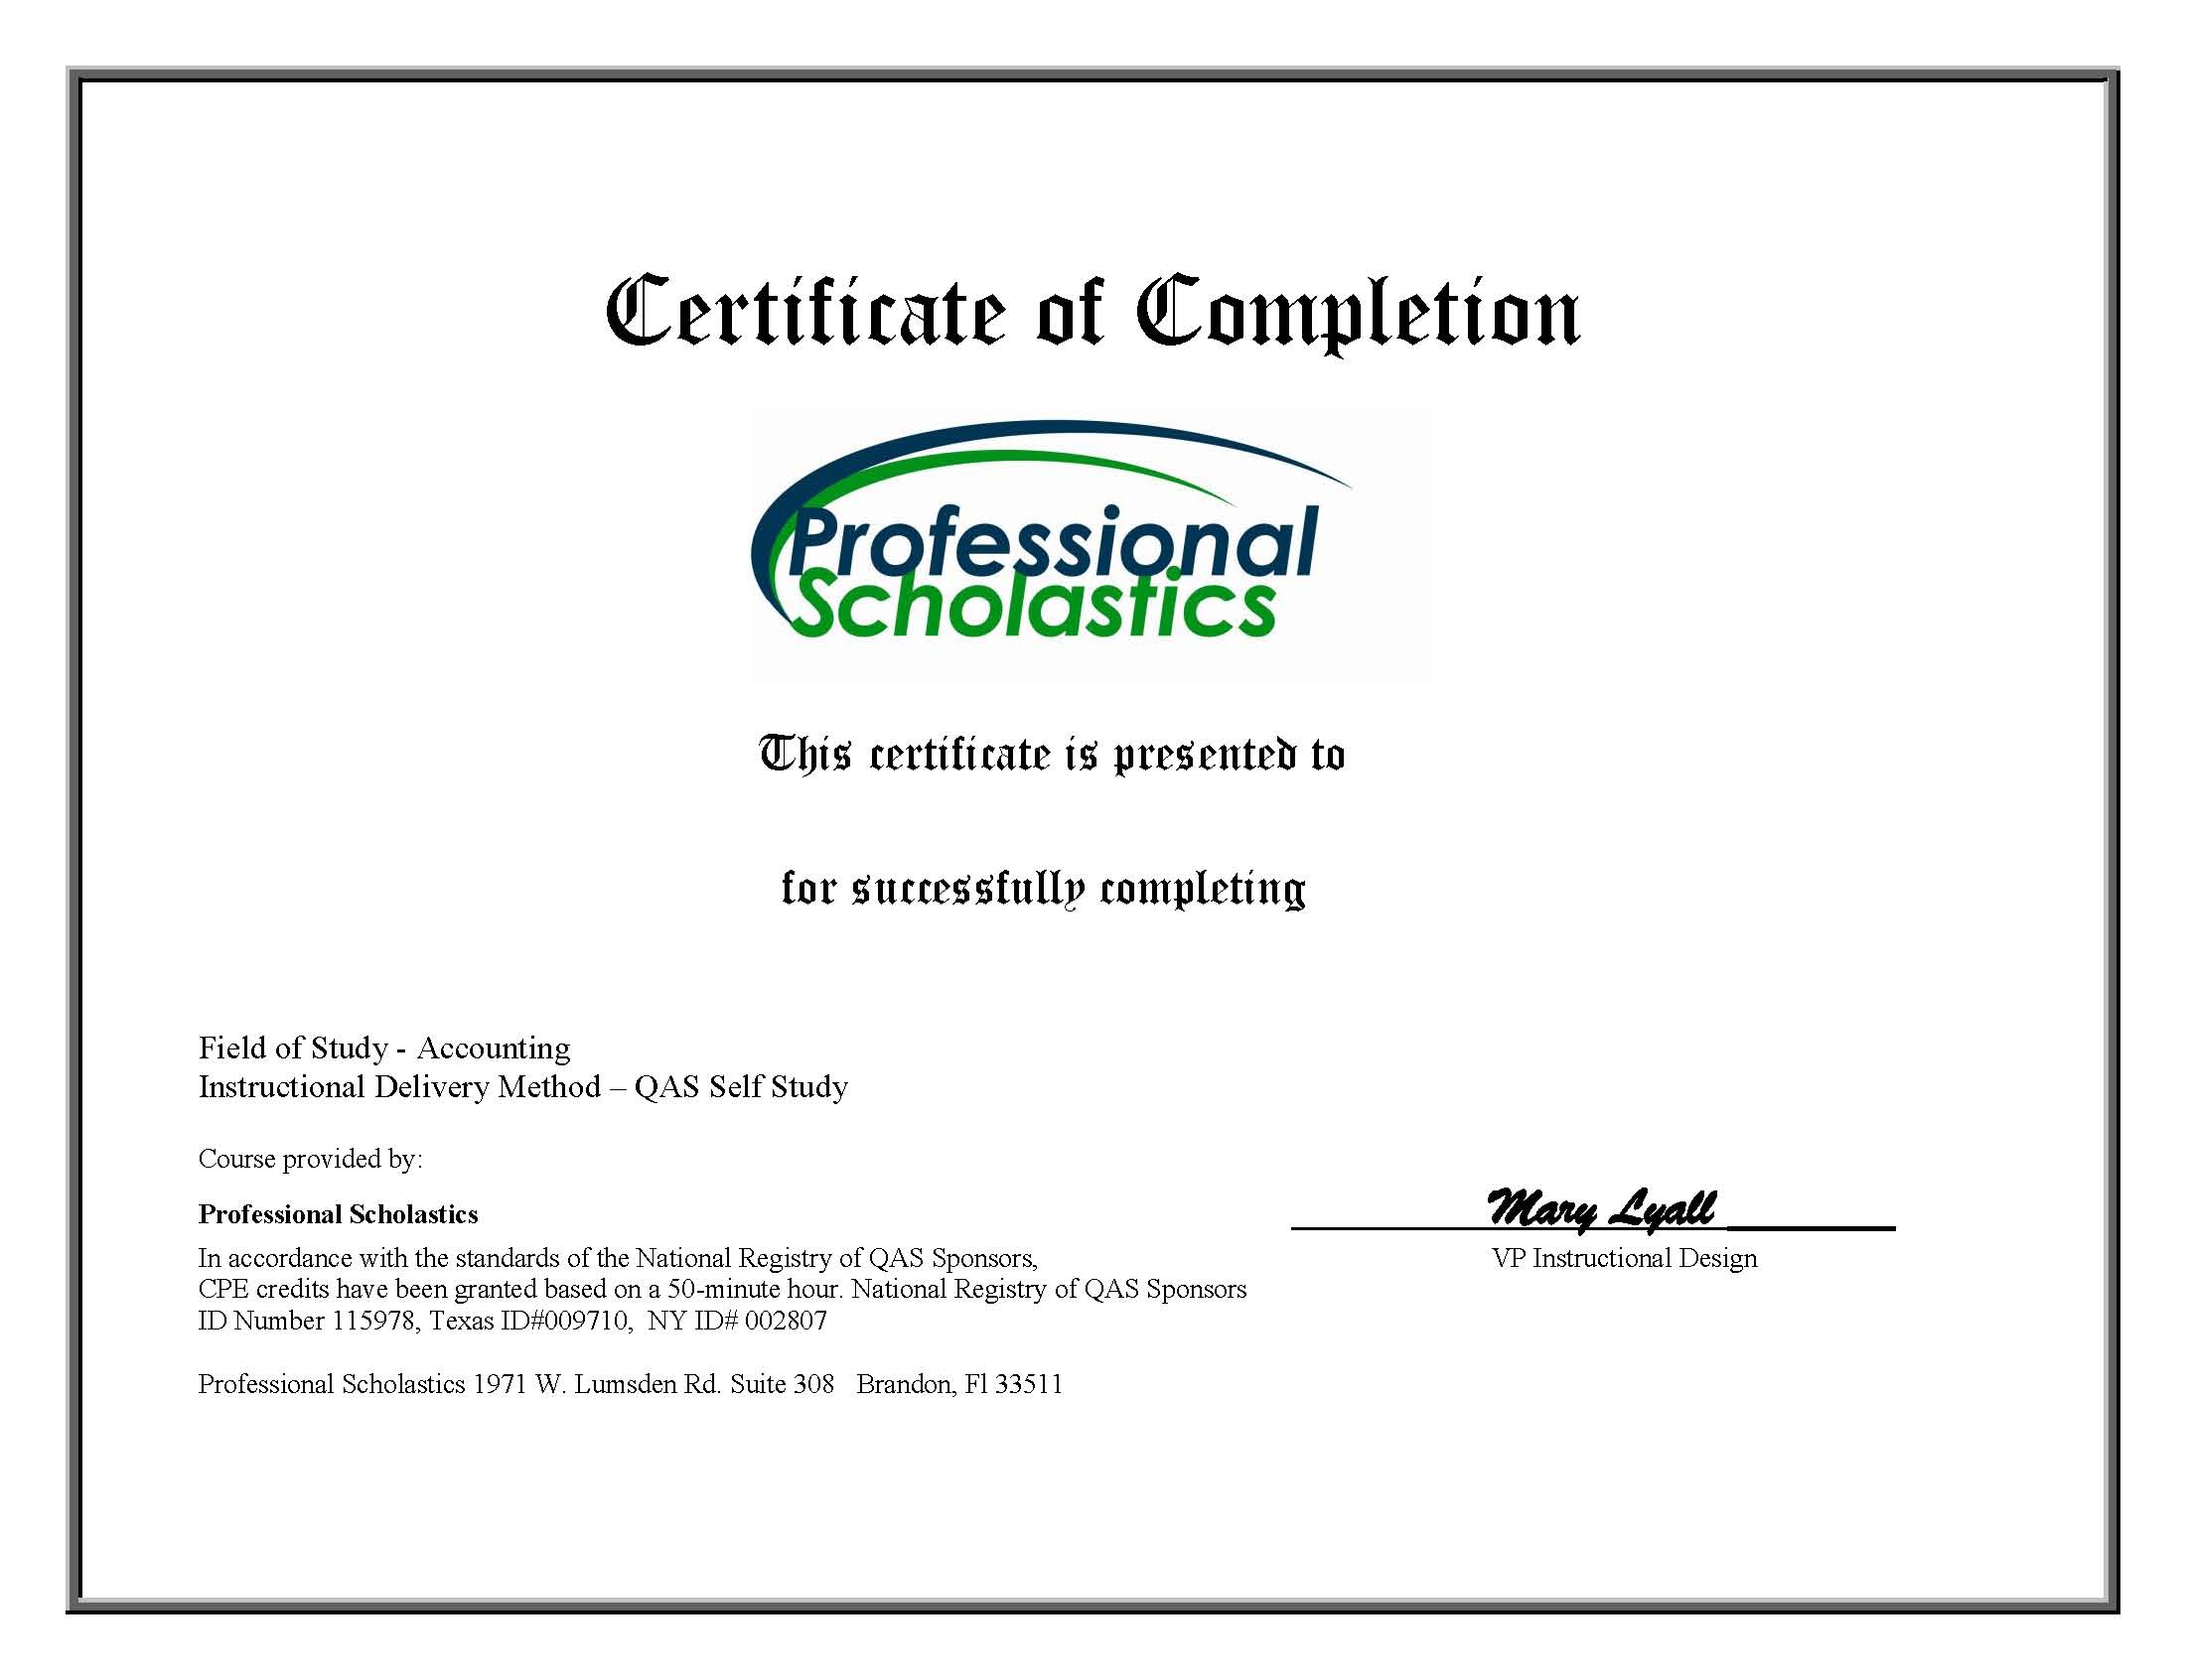 audit certificate template - cpecentral gaap explained 16 credit accounting course